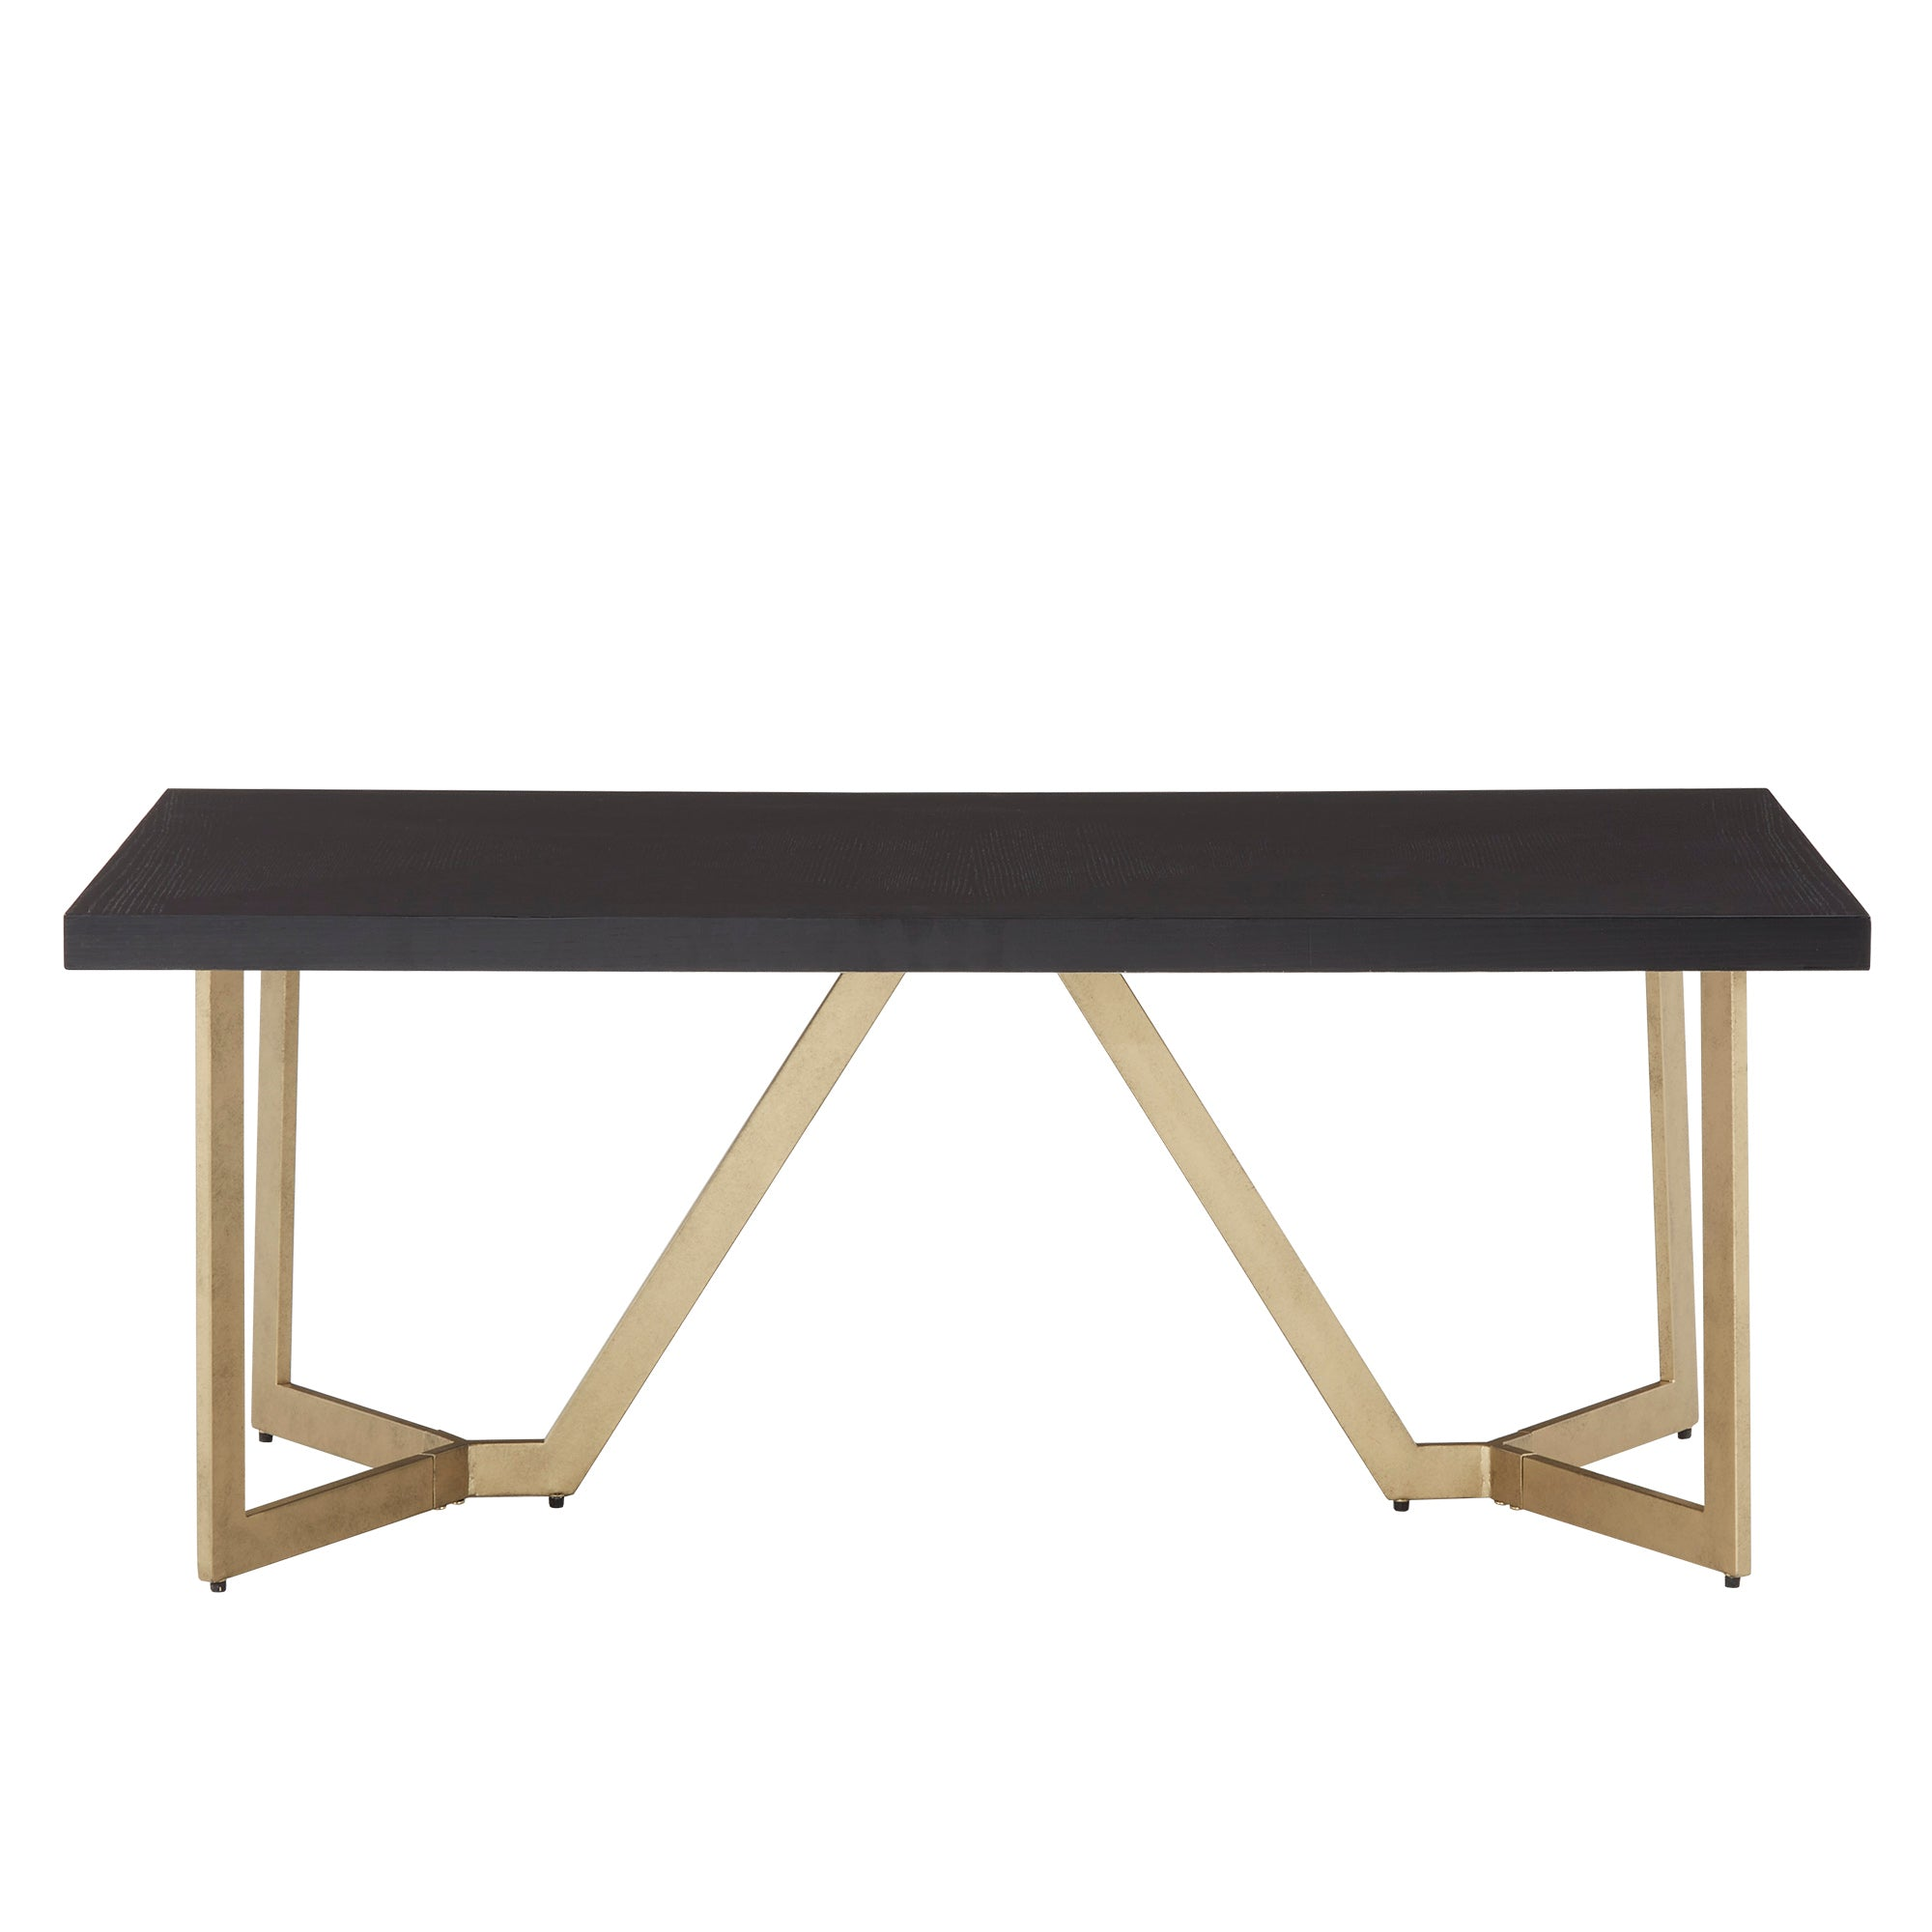 Black and Gold Metal Base Table Set